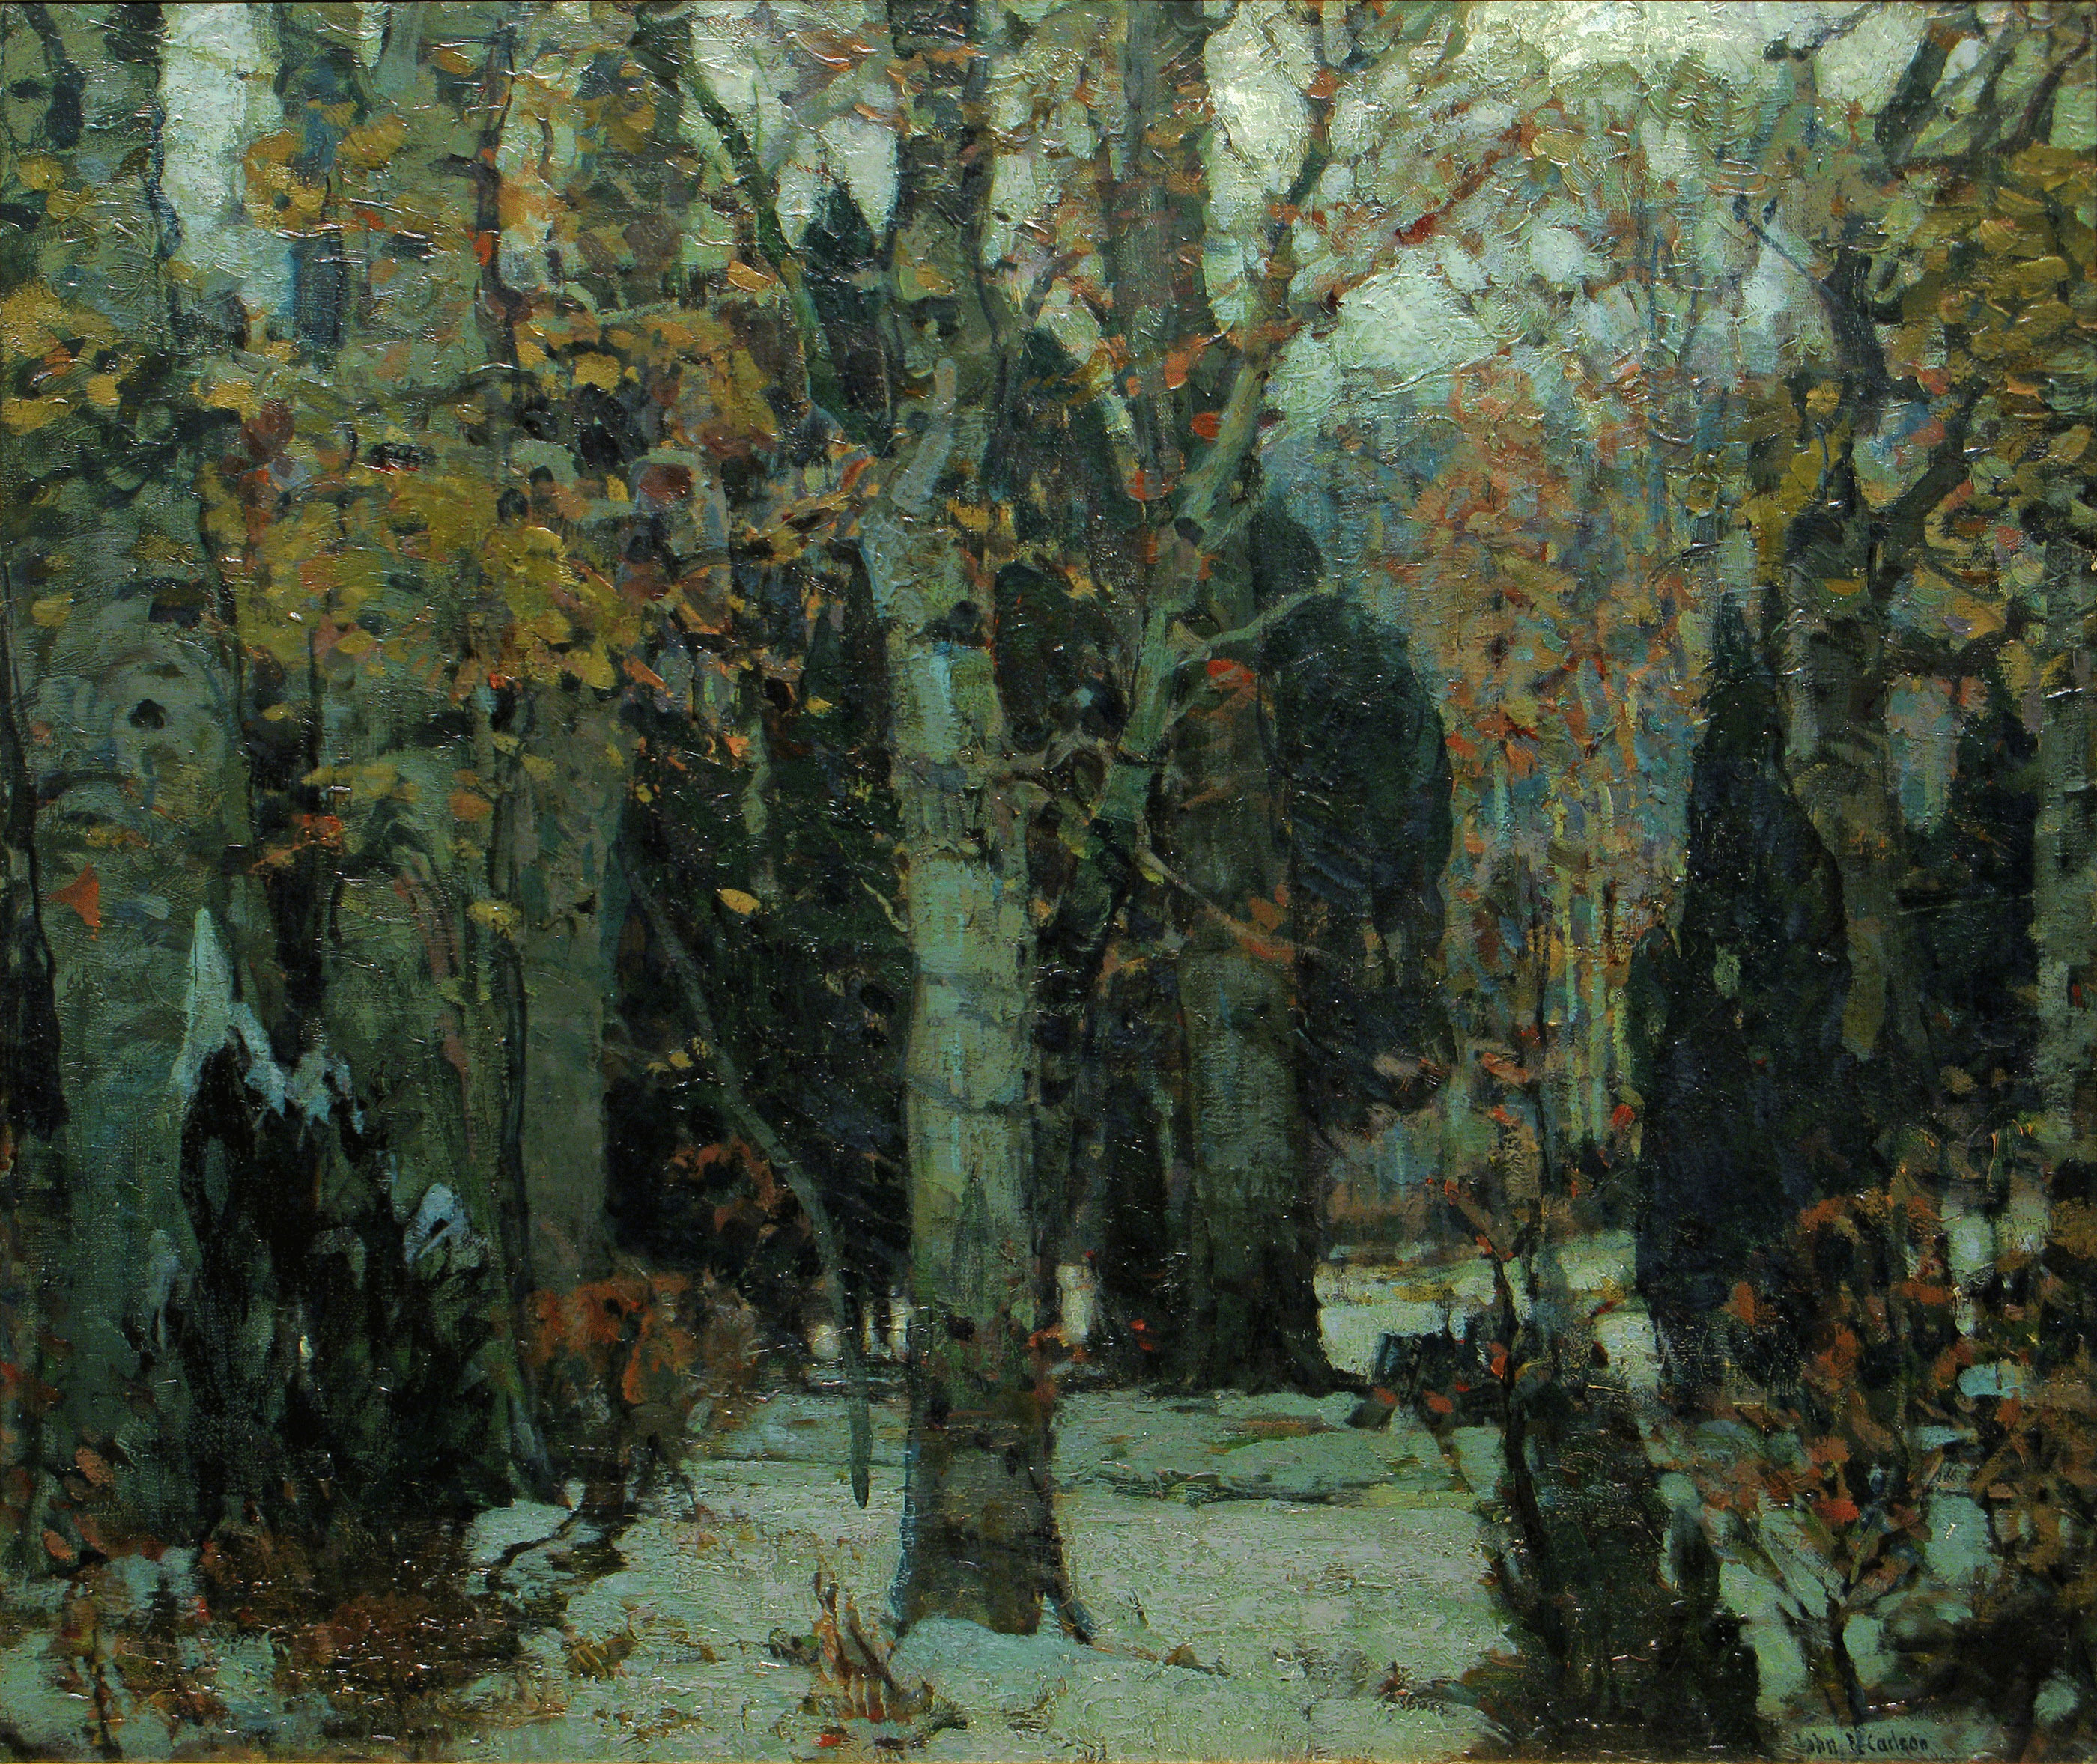 Painting of an autumnal forest losing leaves.